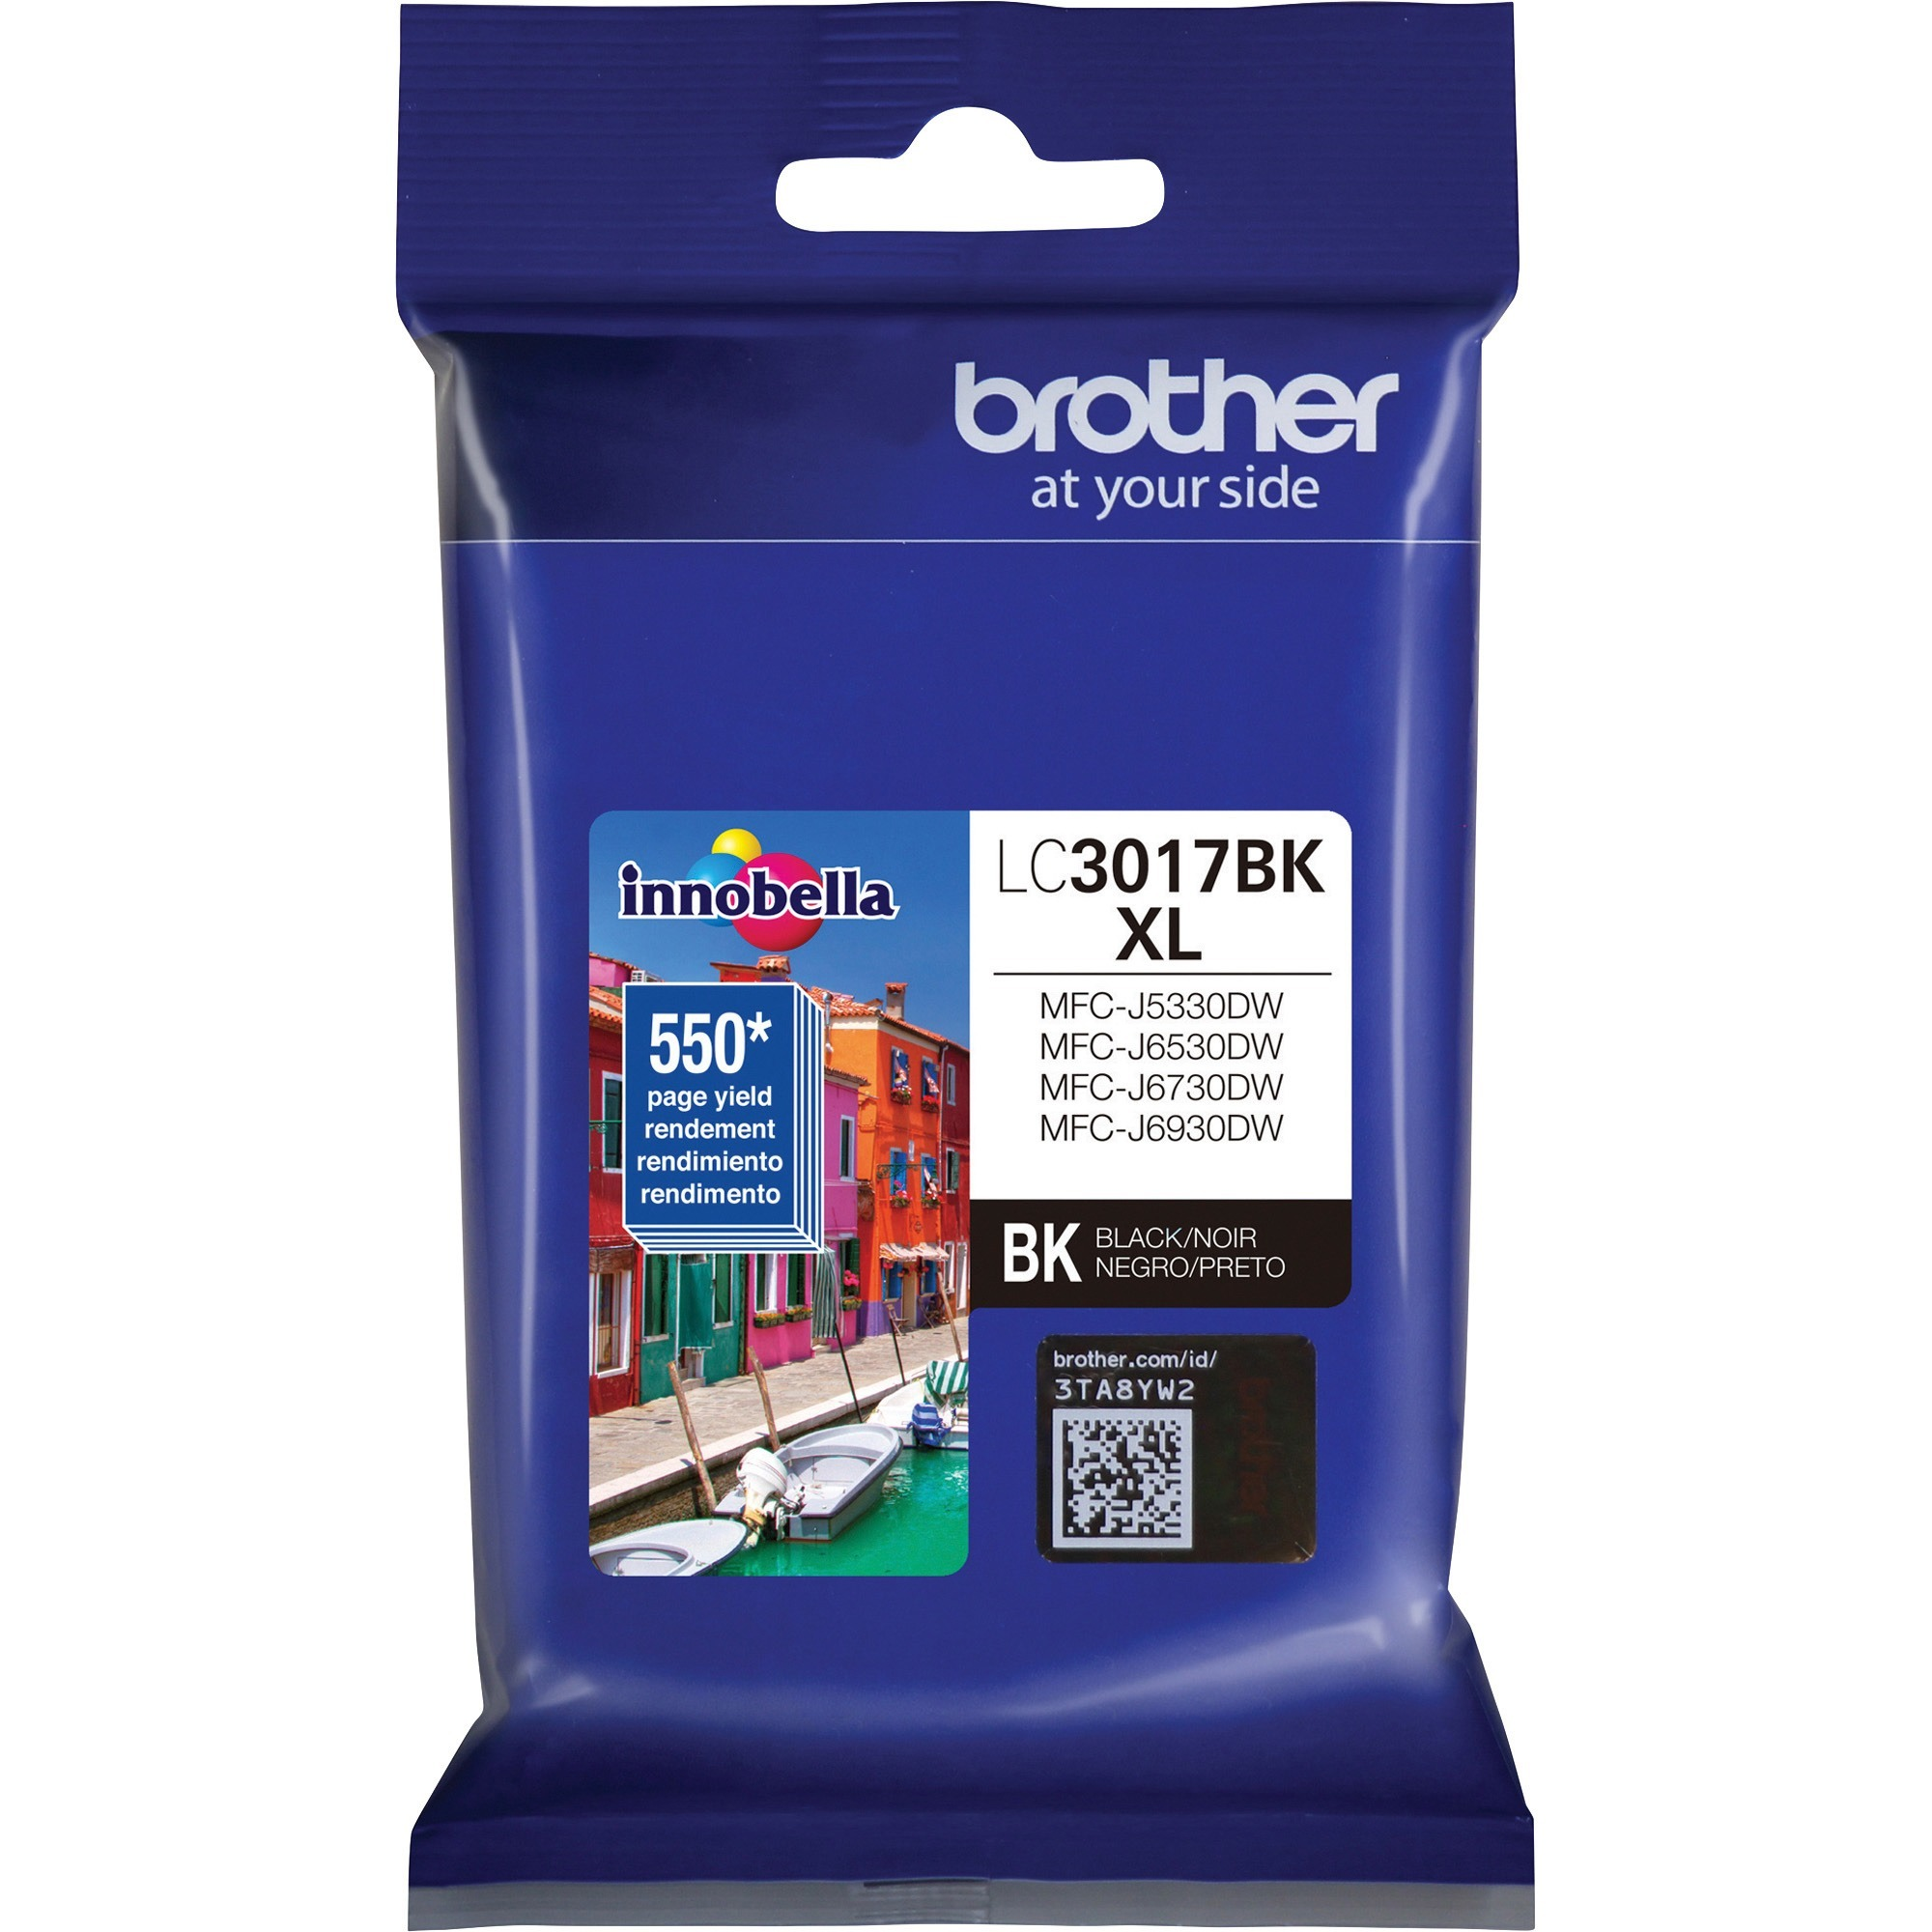 Black, 4 Pack MS Imaging Supply Compatible Inkjet Cartridge Replacement for Brother LC3019BK